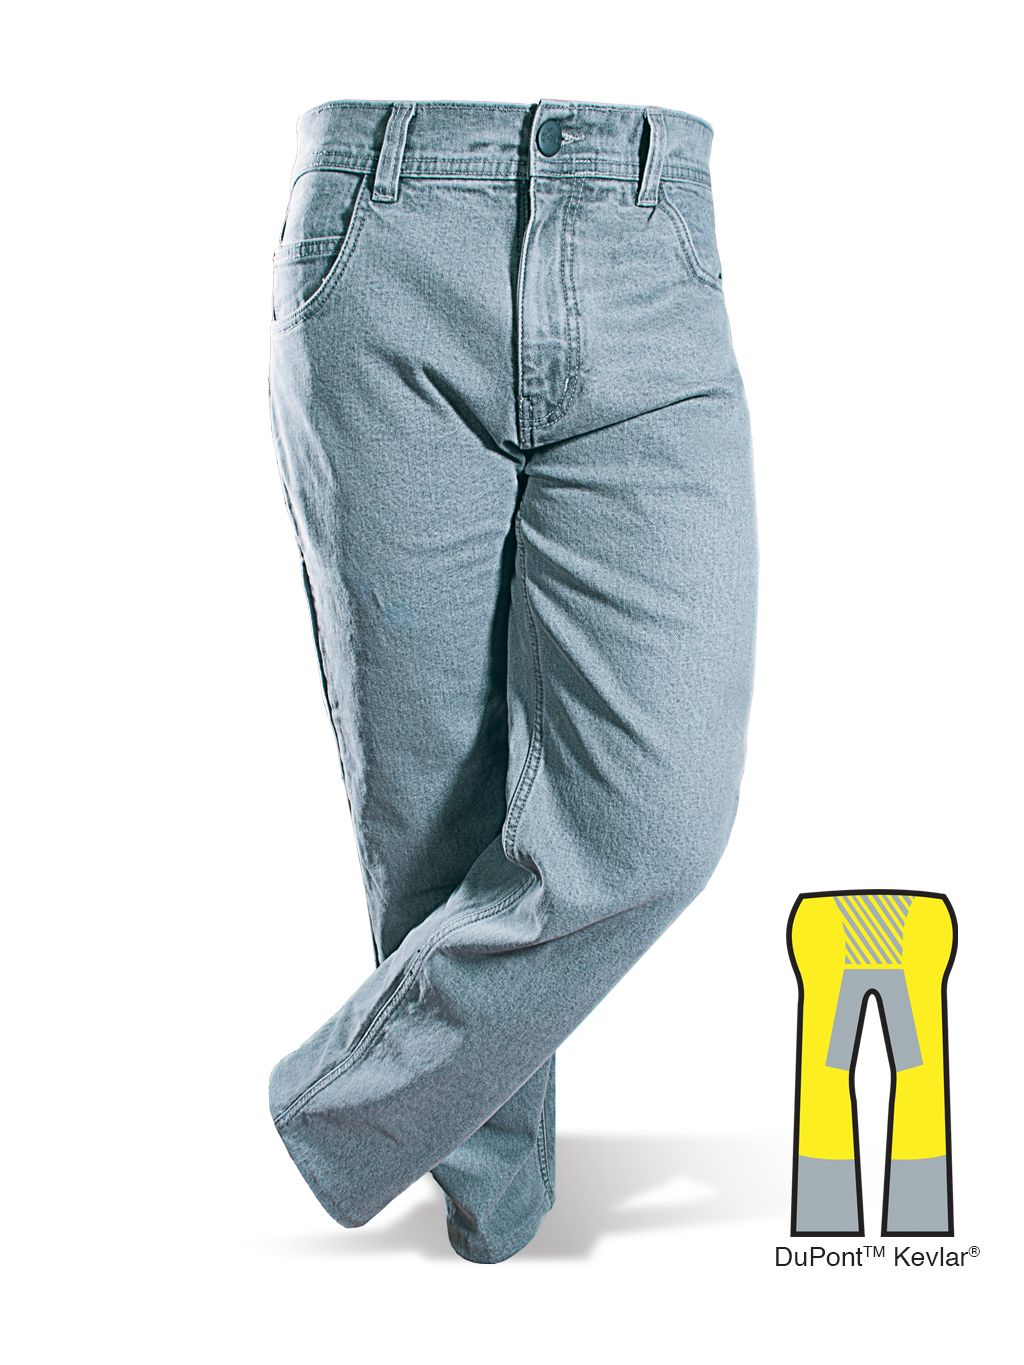 Browse And Select The Stretch Kevlar Jeans No Matter How Rough